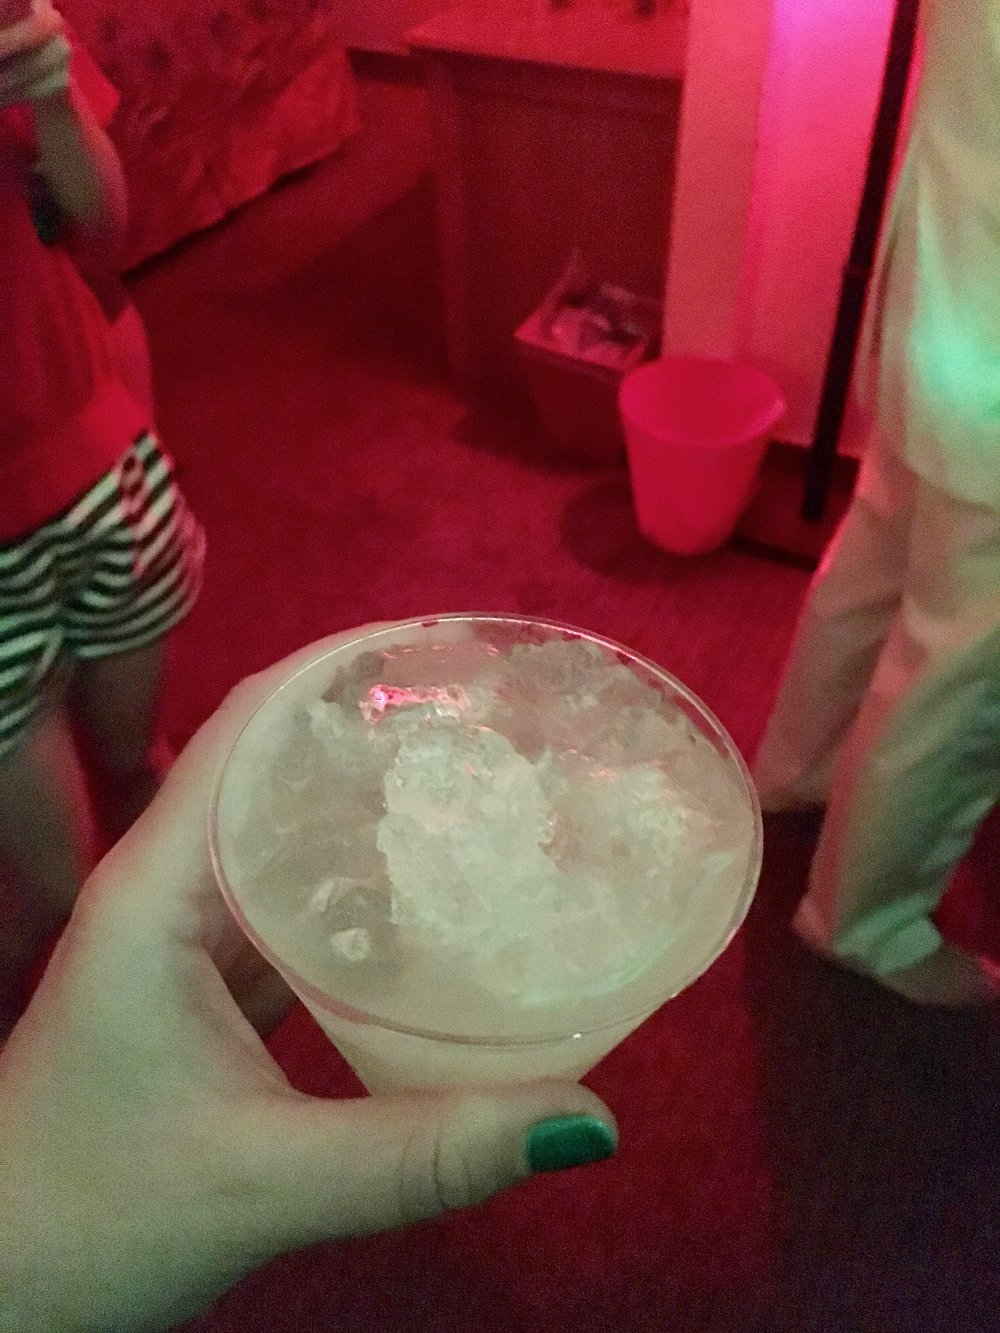 mod-palm-springs-room-party-drink.jpg